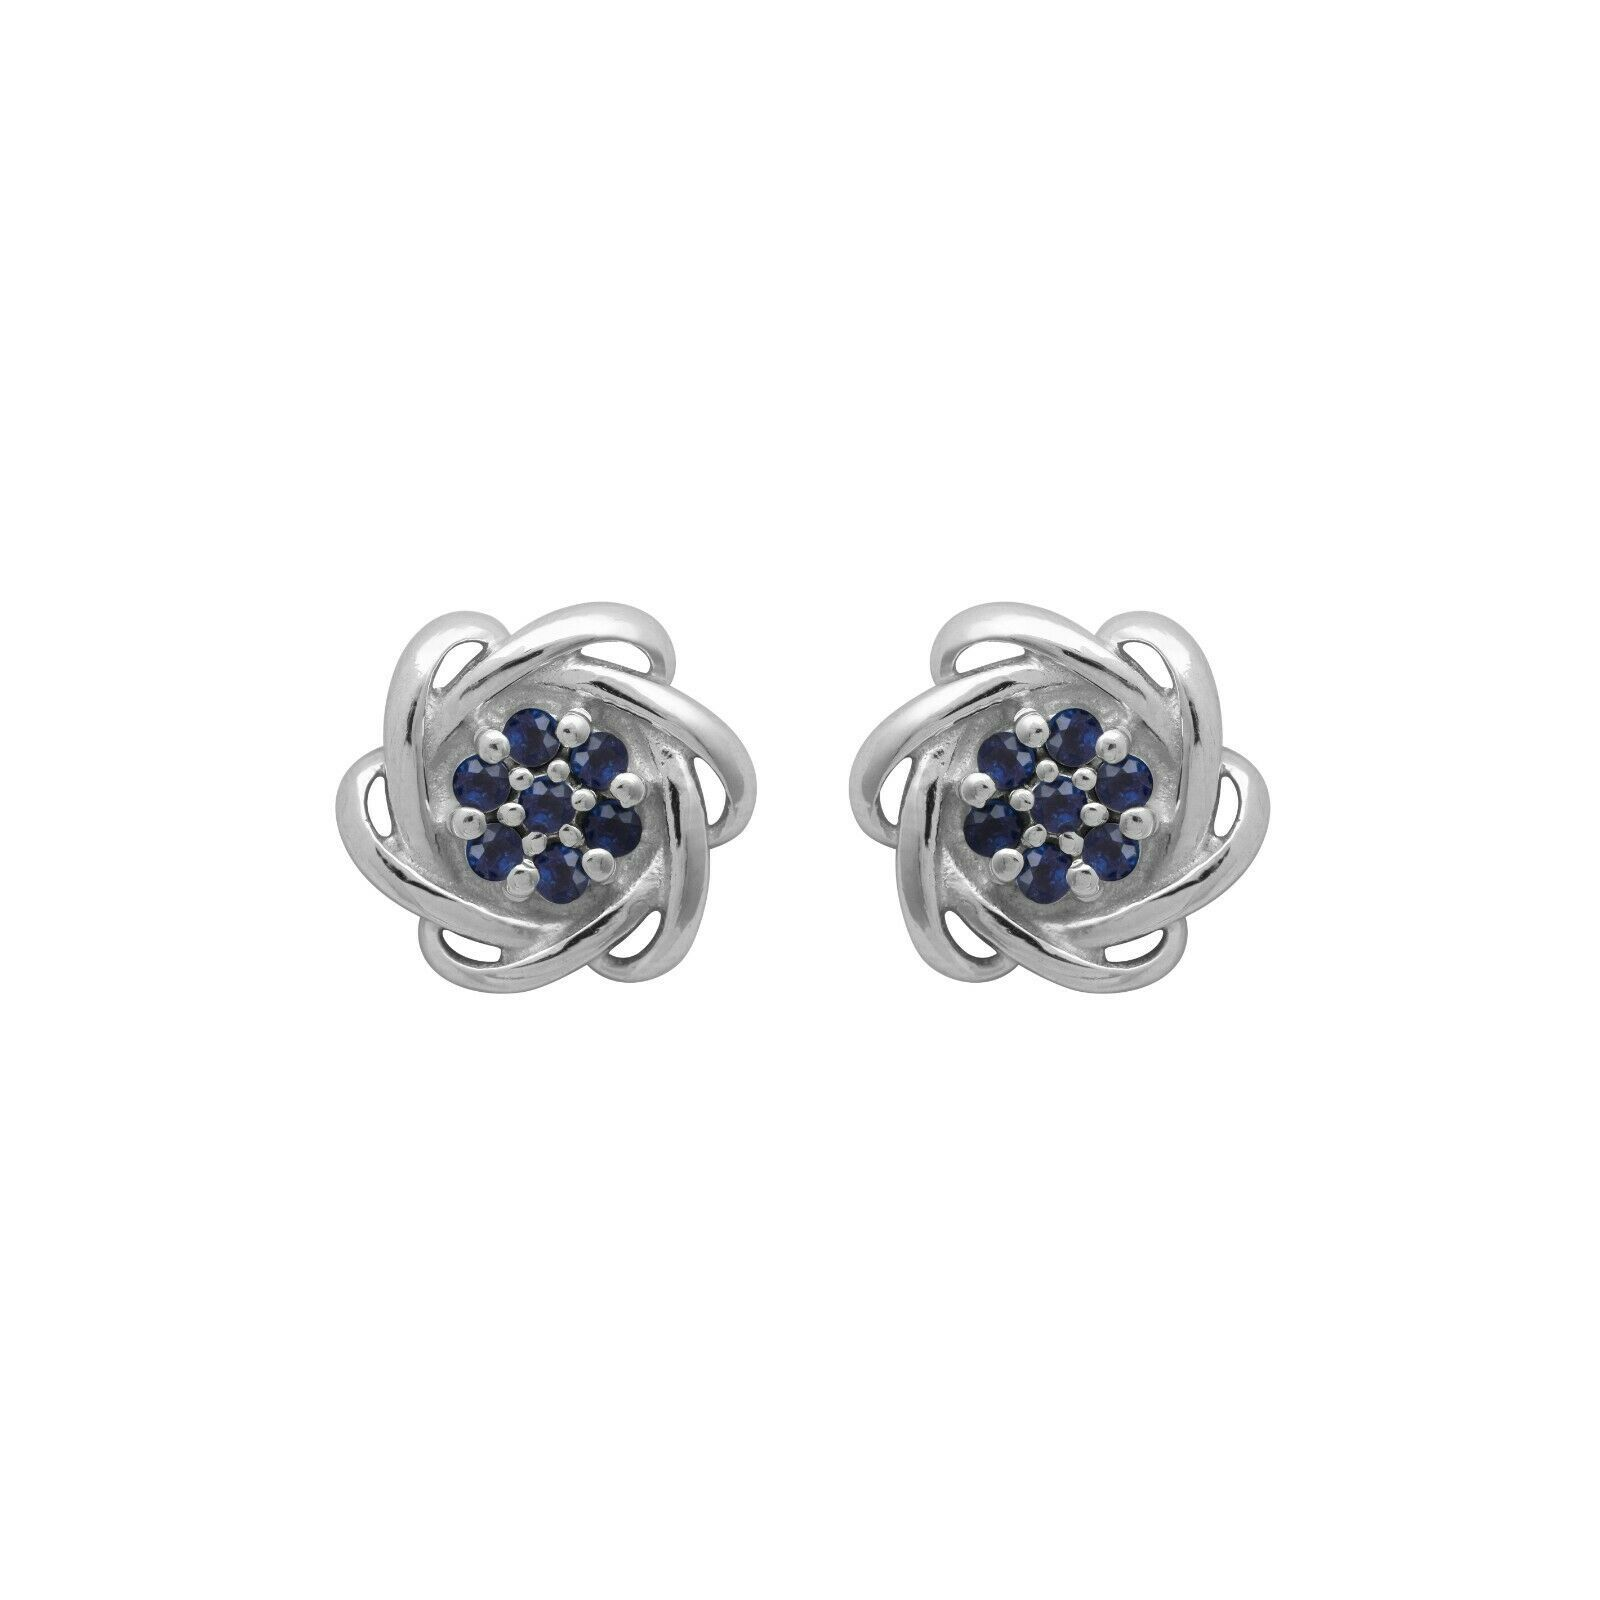 Cluster Stud Earring 925 Sterling Silver Round Blue Sapphire Gemstone